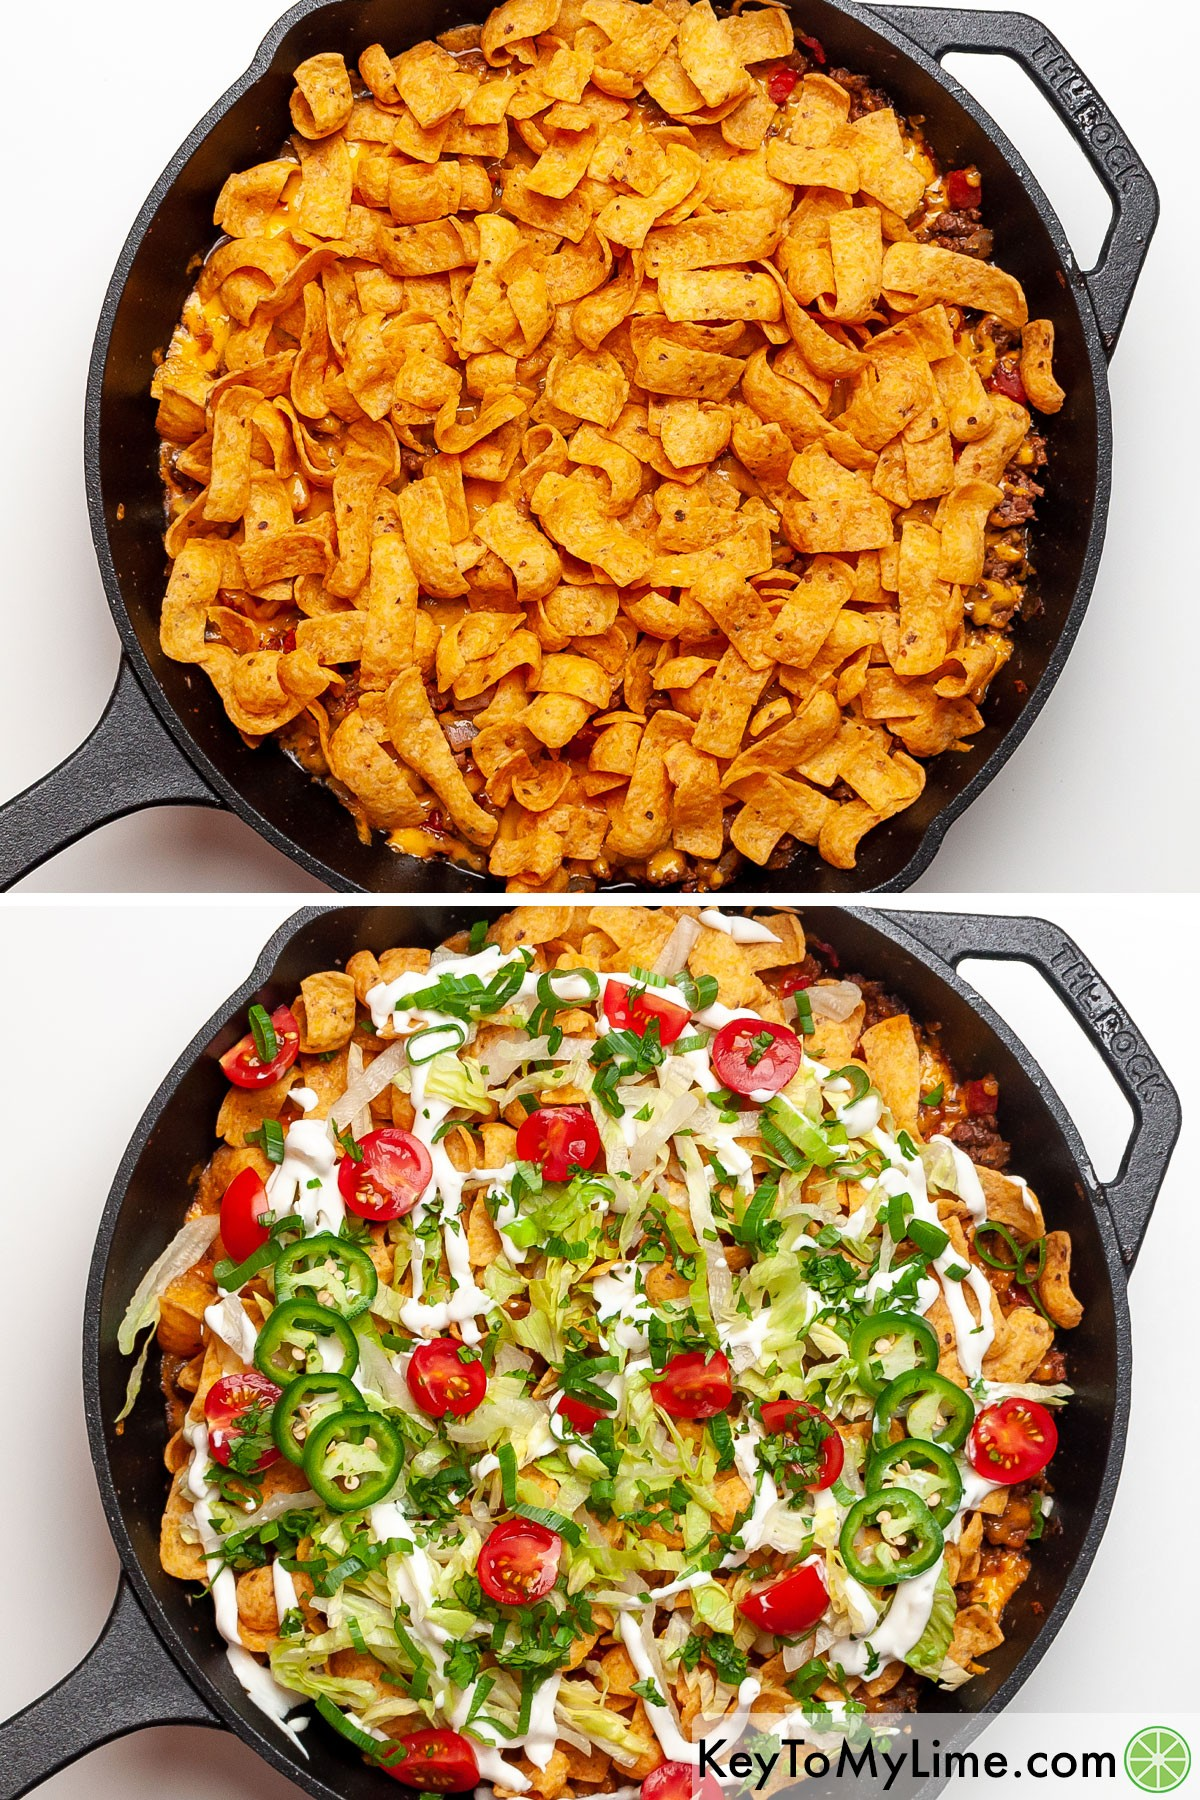 A process collage showing adding corn chips and toppings to walking taco casserole.